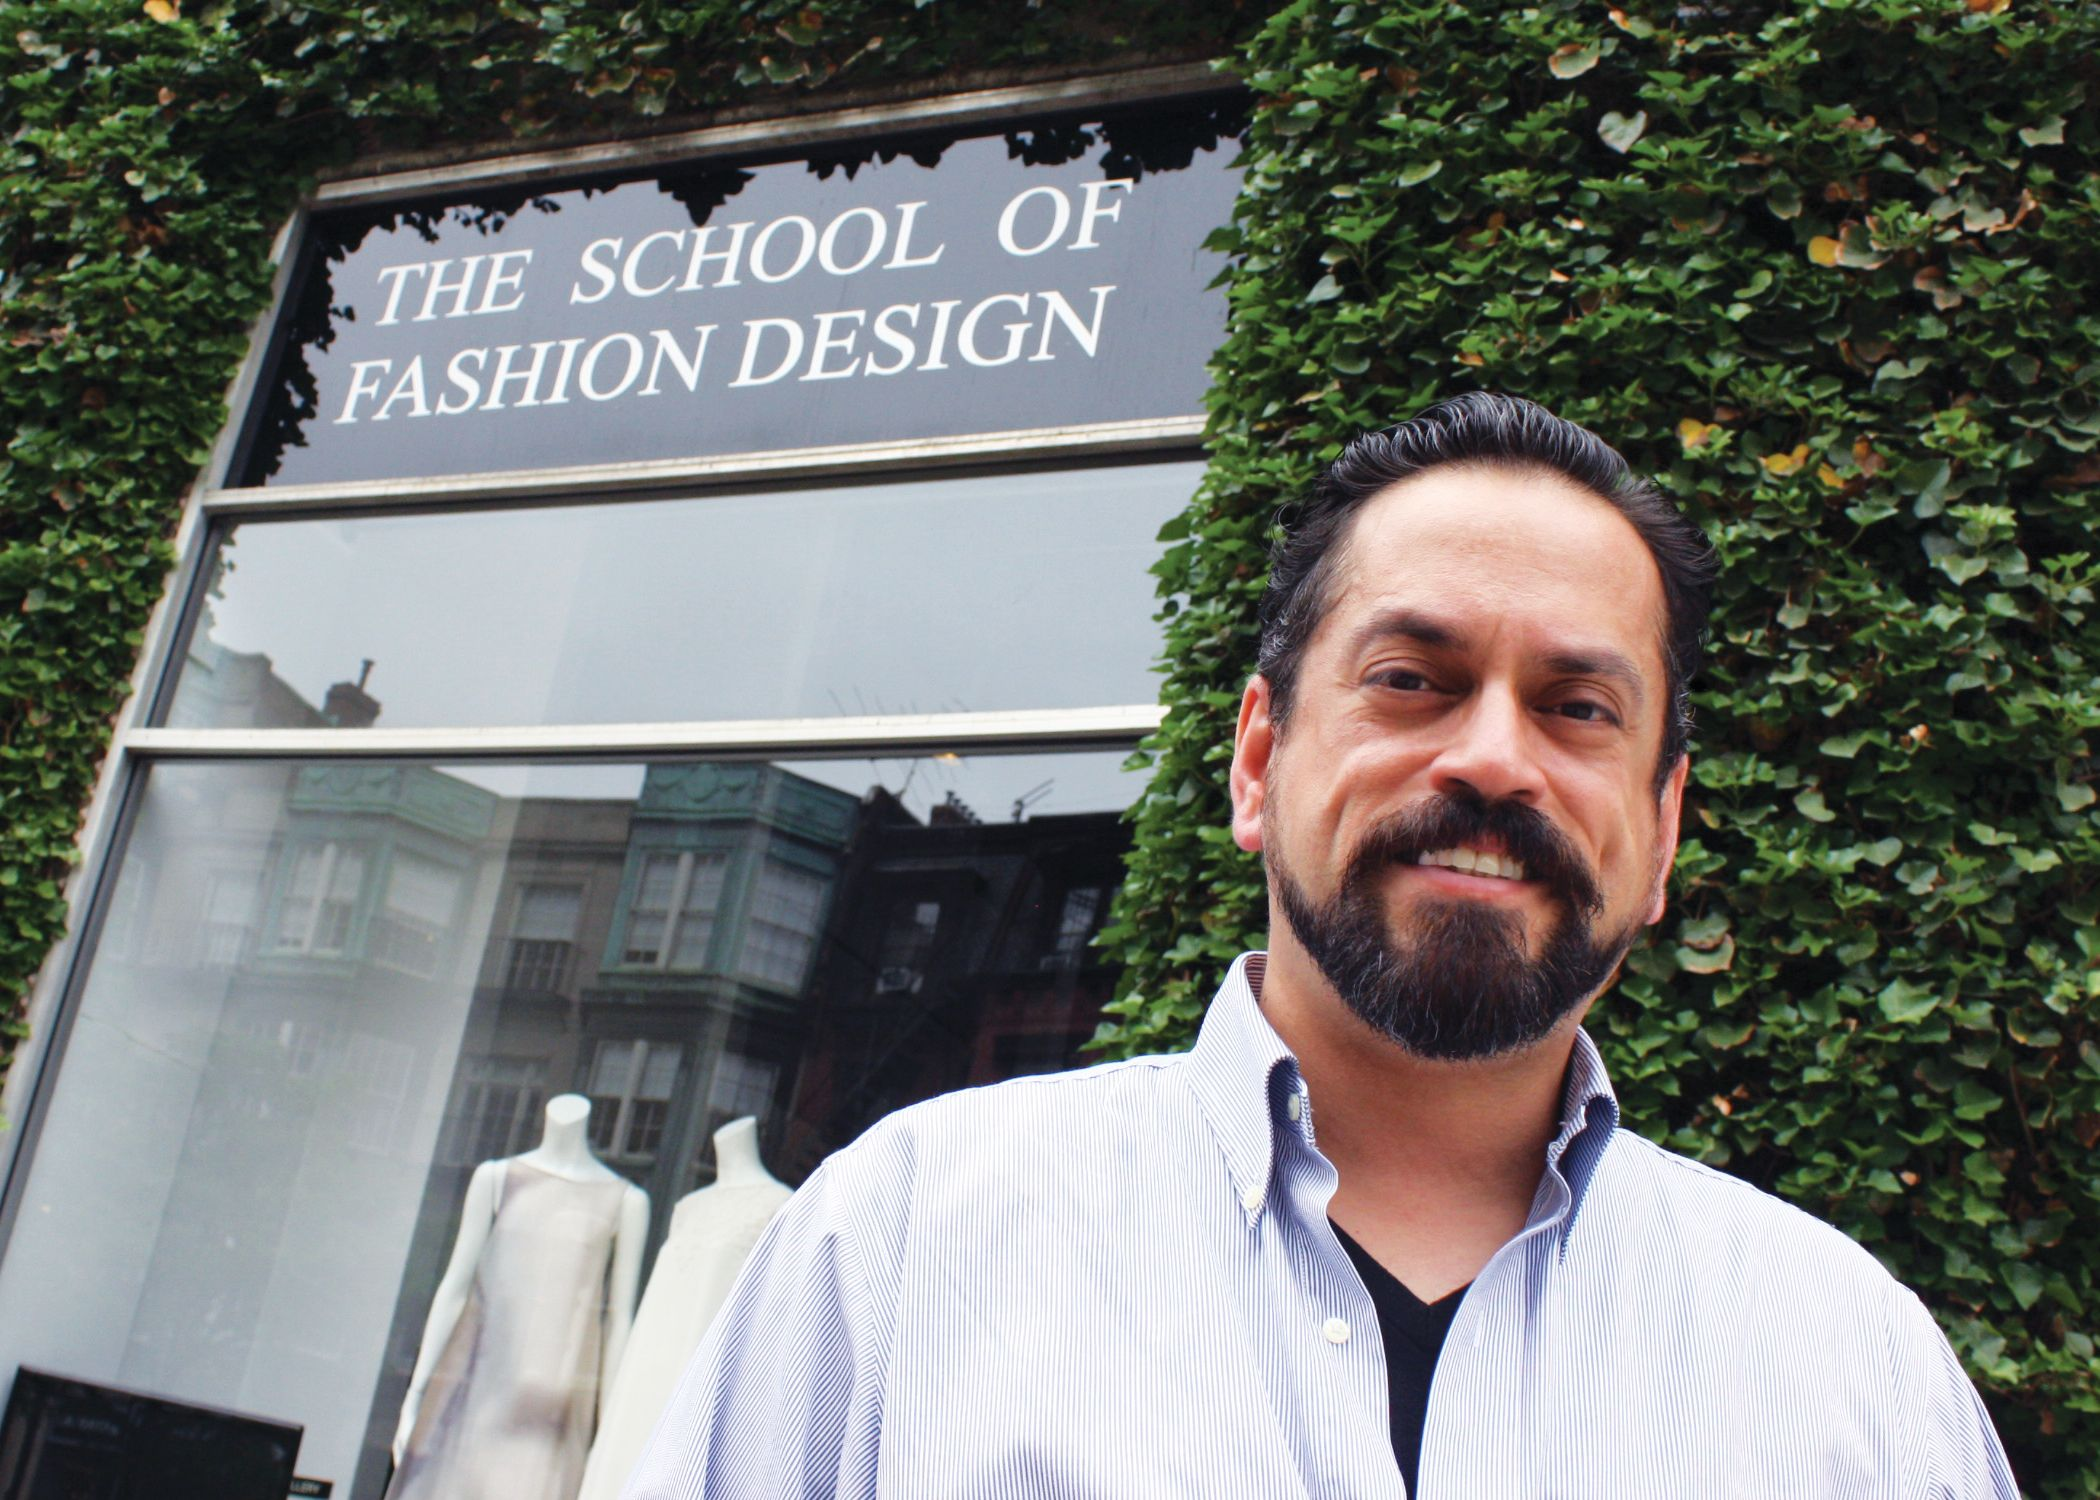 Jay Calderin Author Designer And Leader In Boston S Fashion Scene By Alison Harris People Design Author